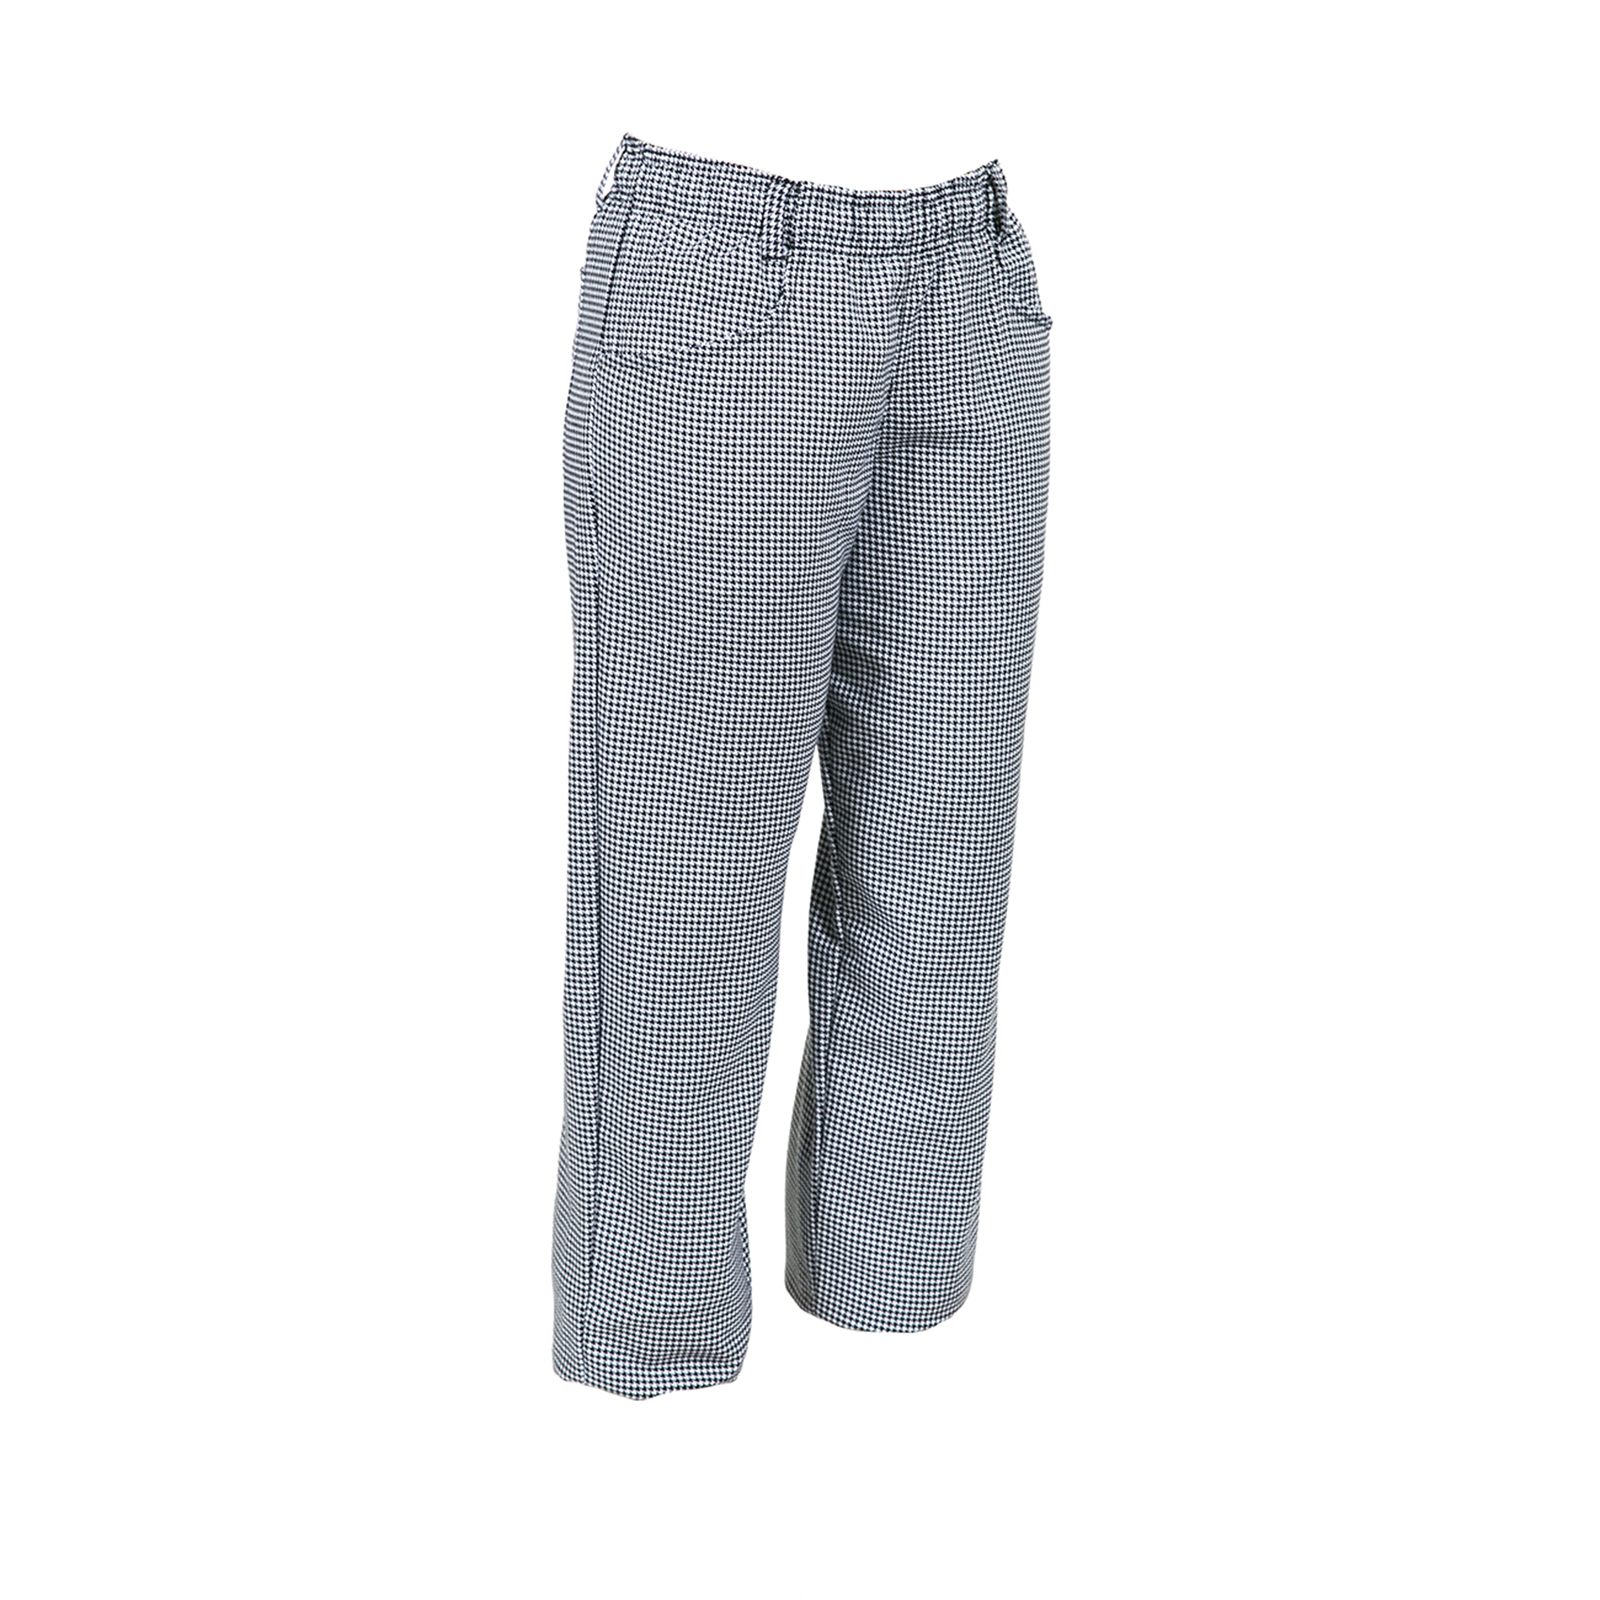 Mercer Culinary M60040HTM chef's pants